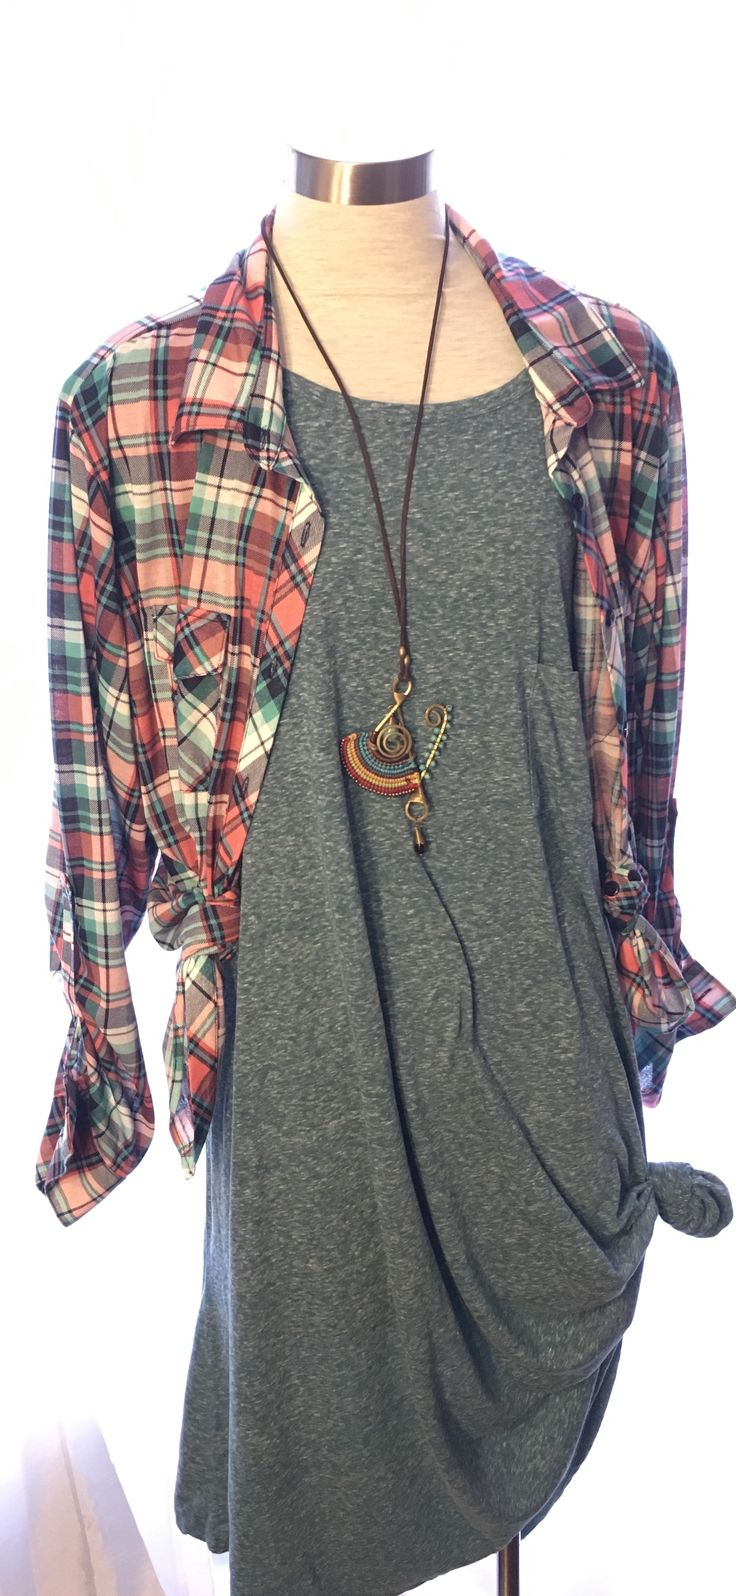 Carly 2x Cute plaid shirt Knot just for causal style #SherrysSharedTreasures